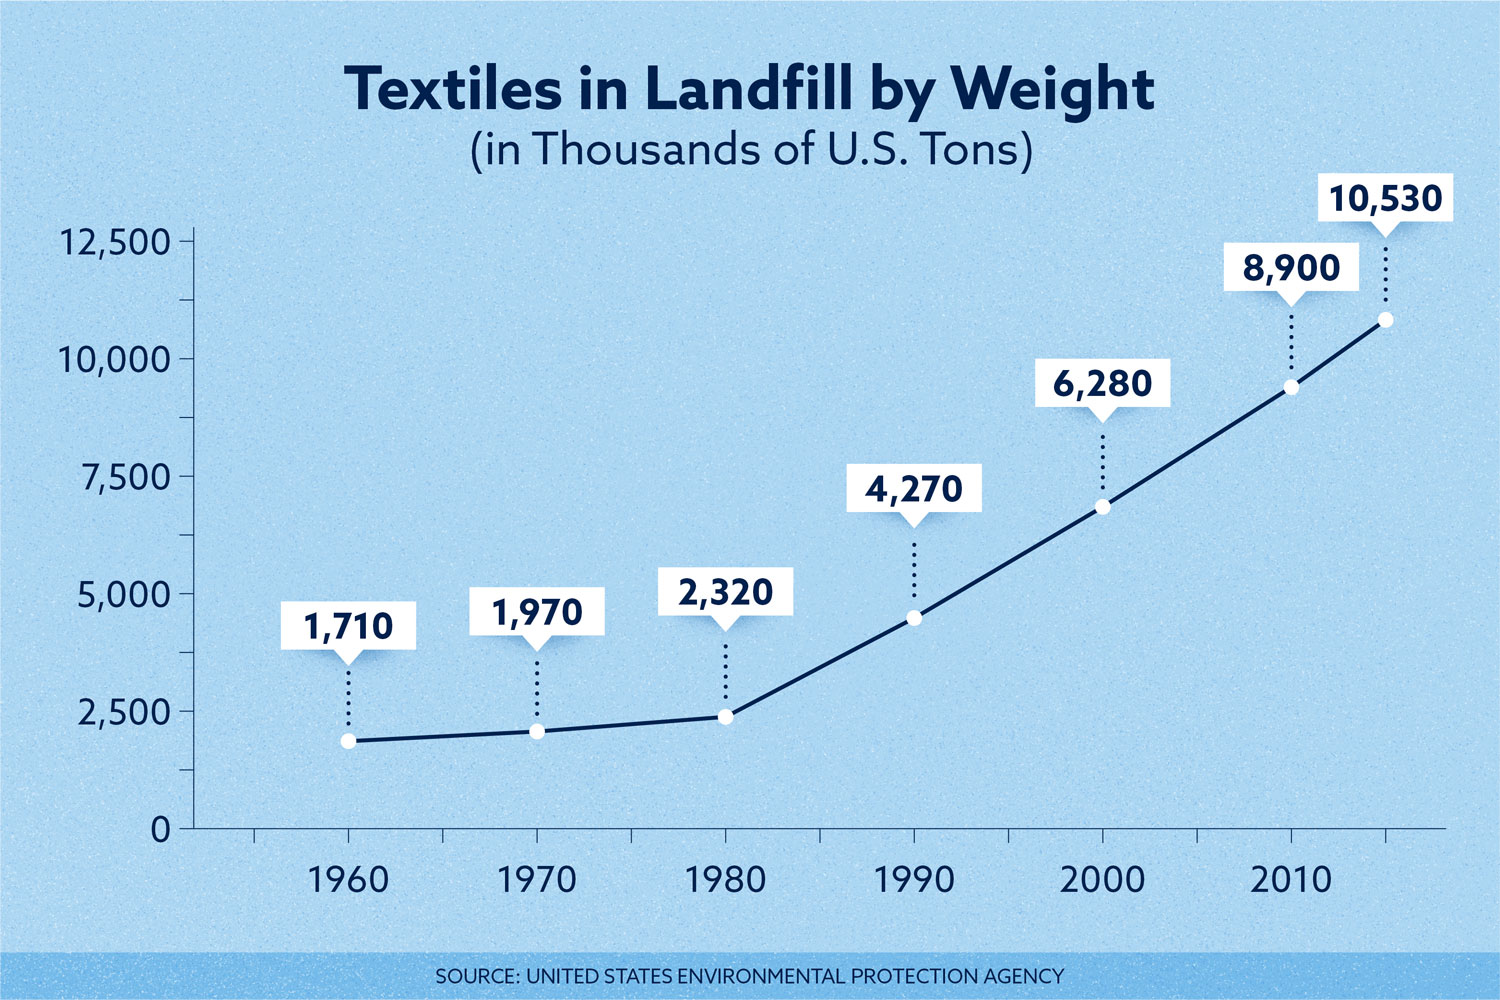 textiles in landfills by weight